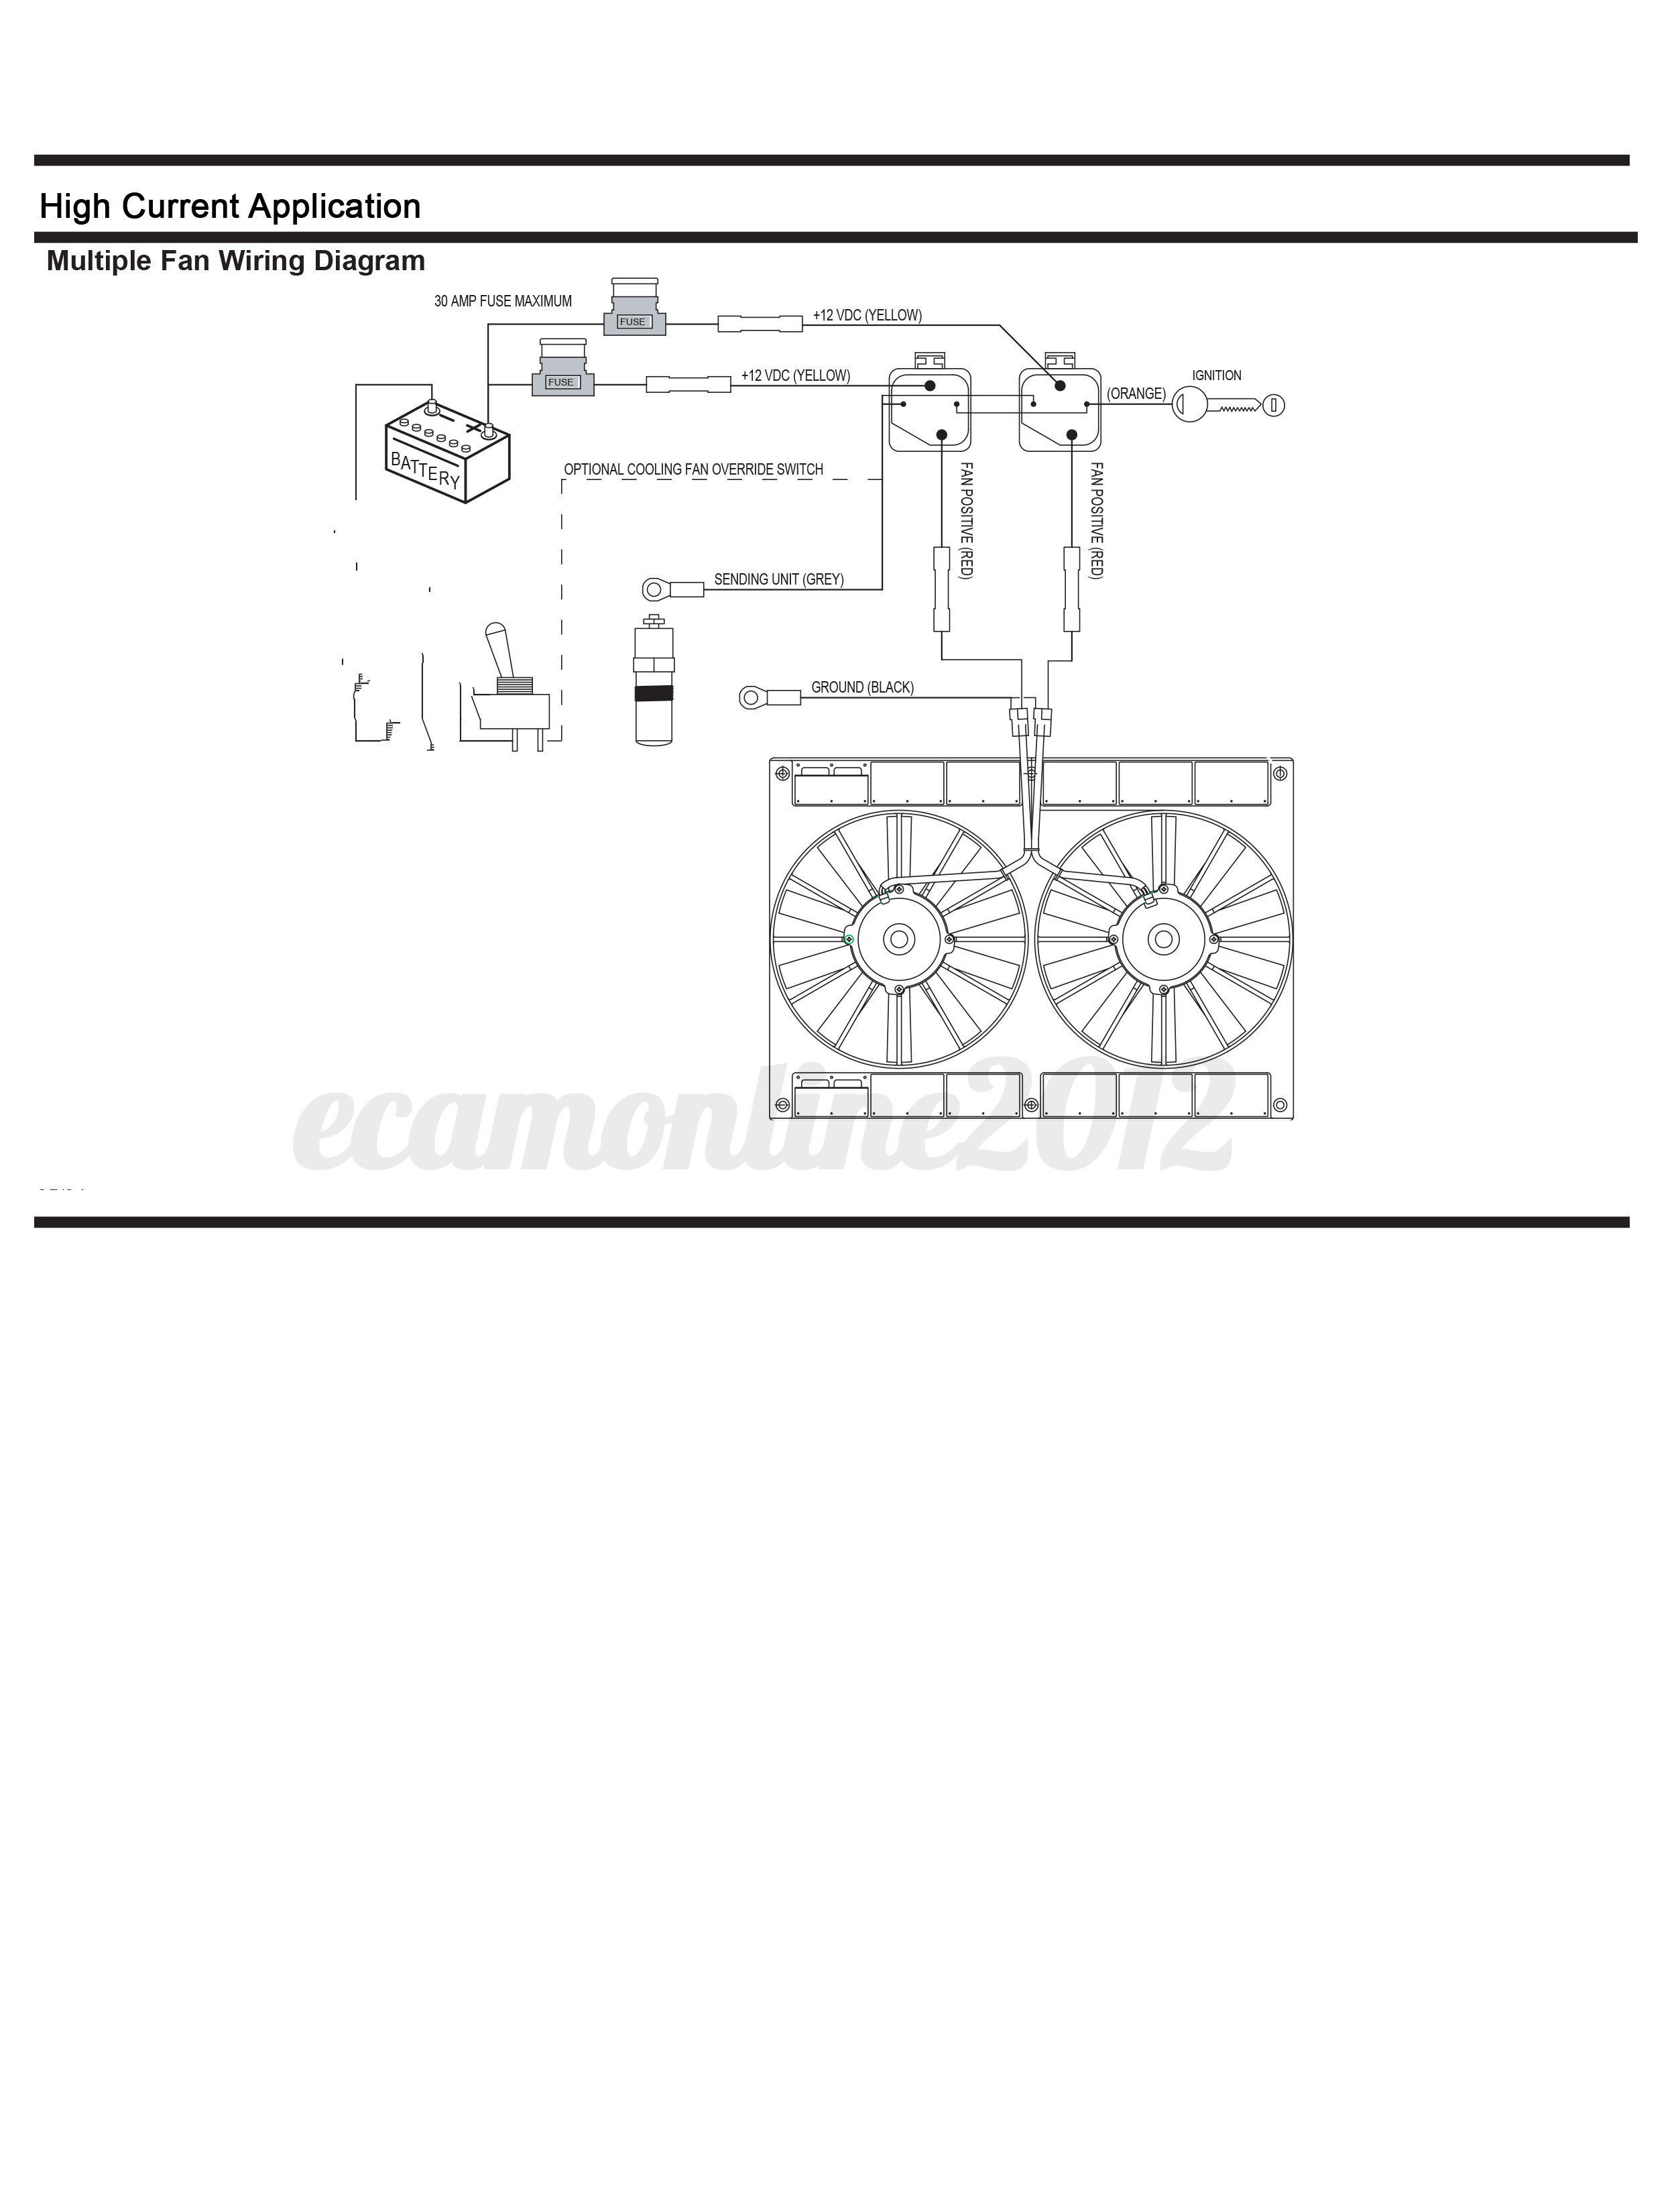 e34 wiring diagram with Fan Wire Diagram For Pc on Bluebird Wiring Diagram Speaker additionally E39 also E34 Fuel Pump Relay Location as well Volvo 240 Dl Fuel Pump Relay Location moreover 577754 Bmw E60 Front Suspension Diagram.